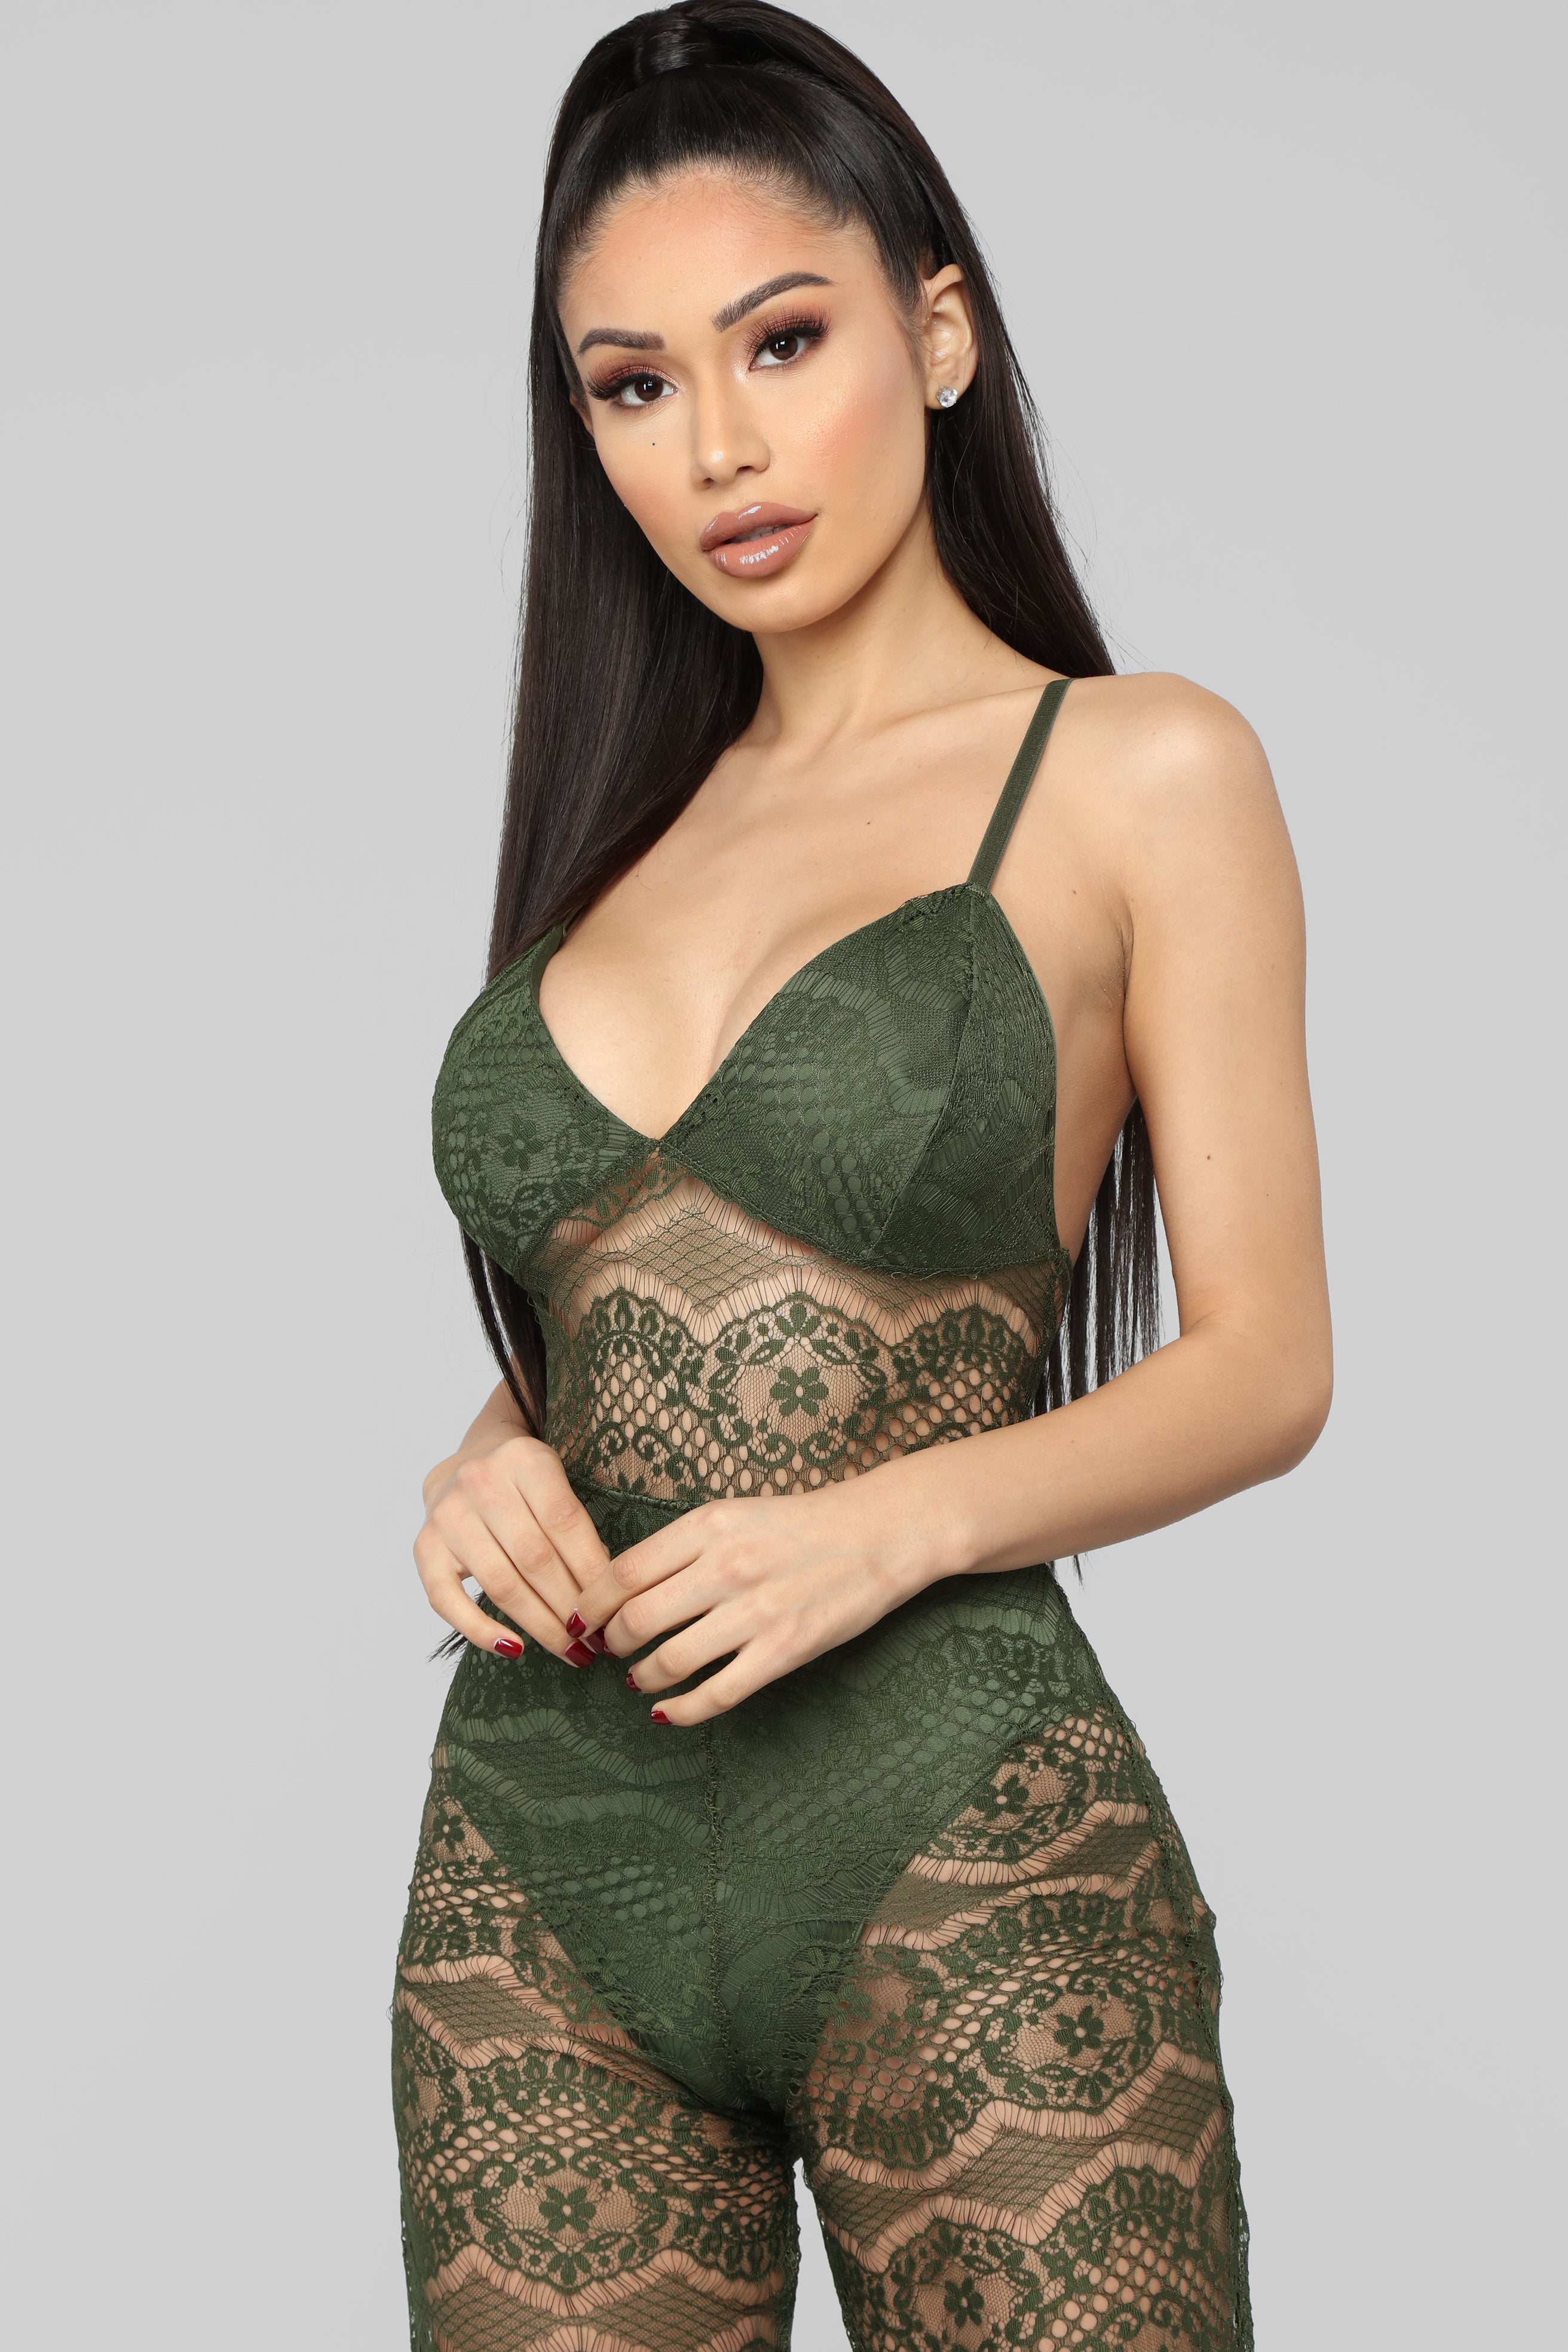 b87274230b191 Just One Night Lingerie Jumpsuit - Olive